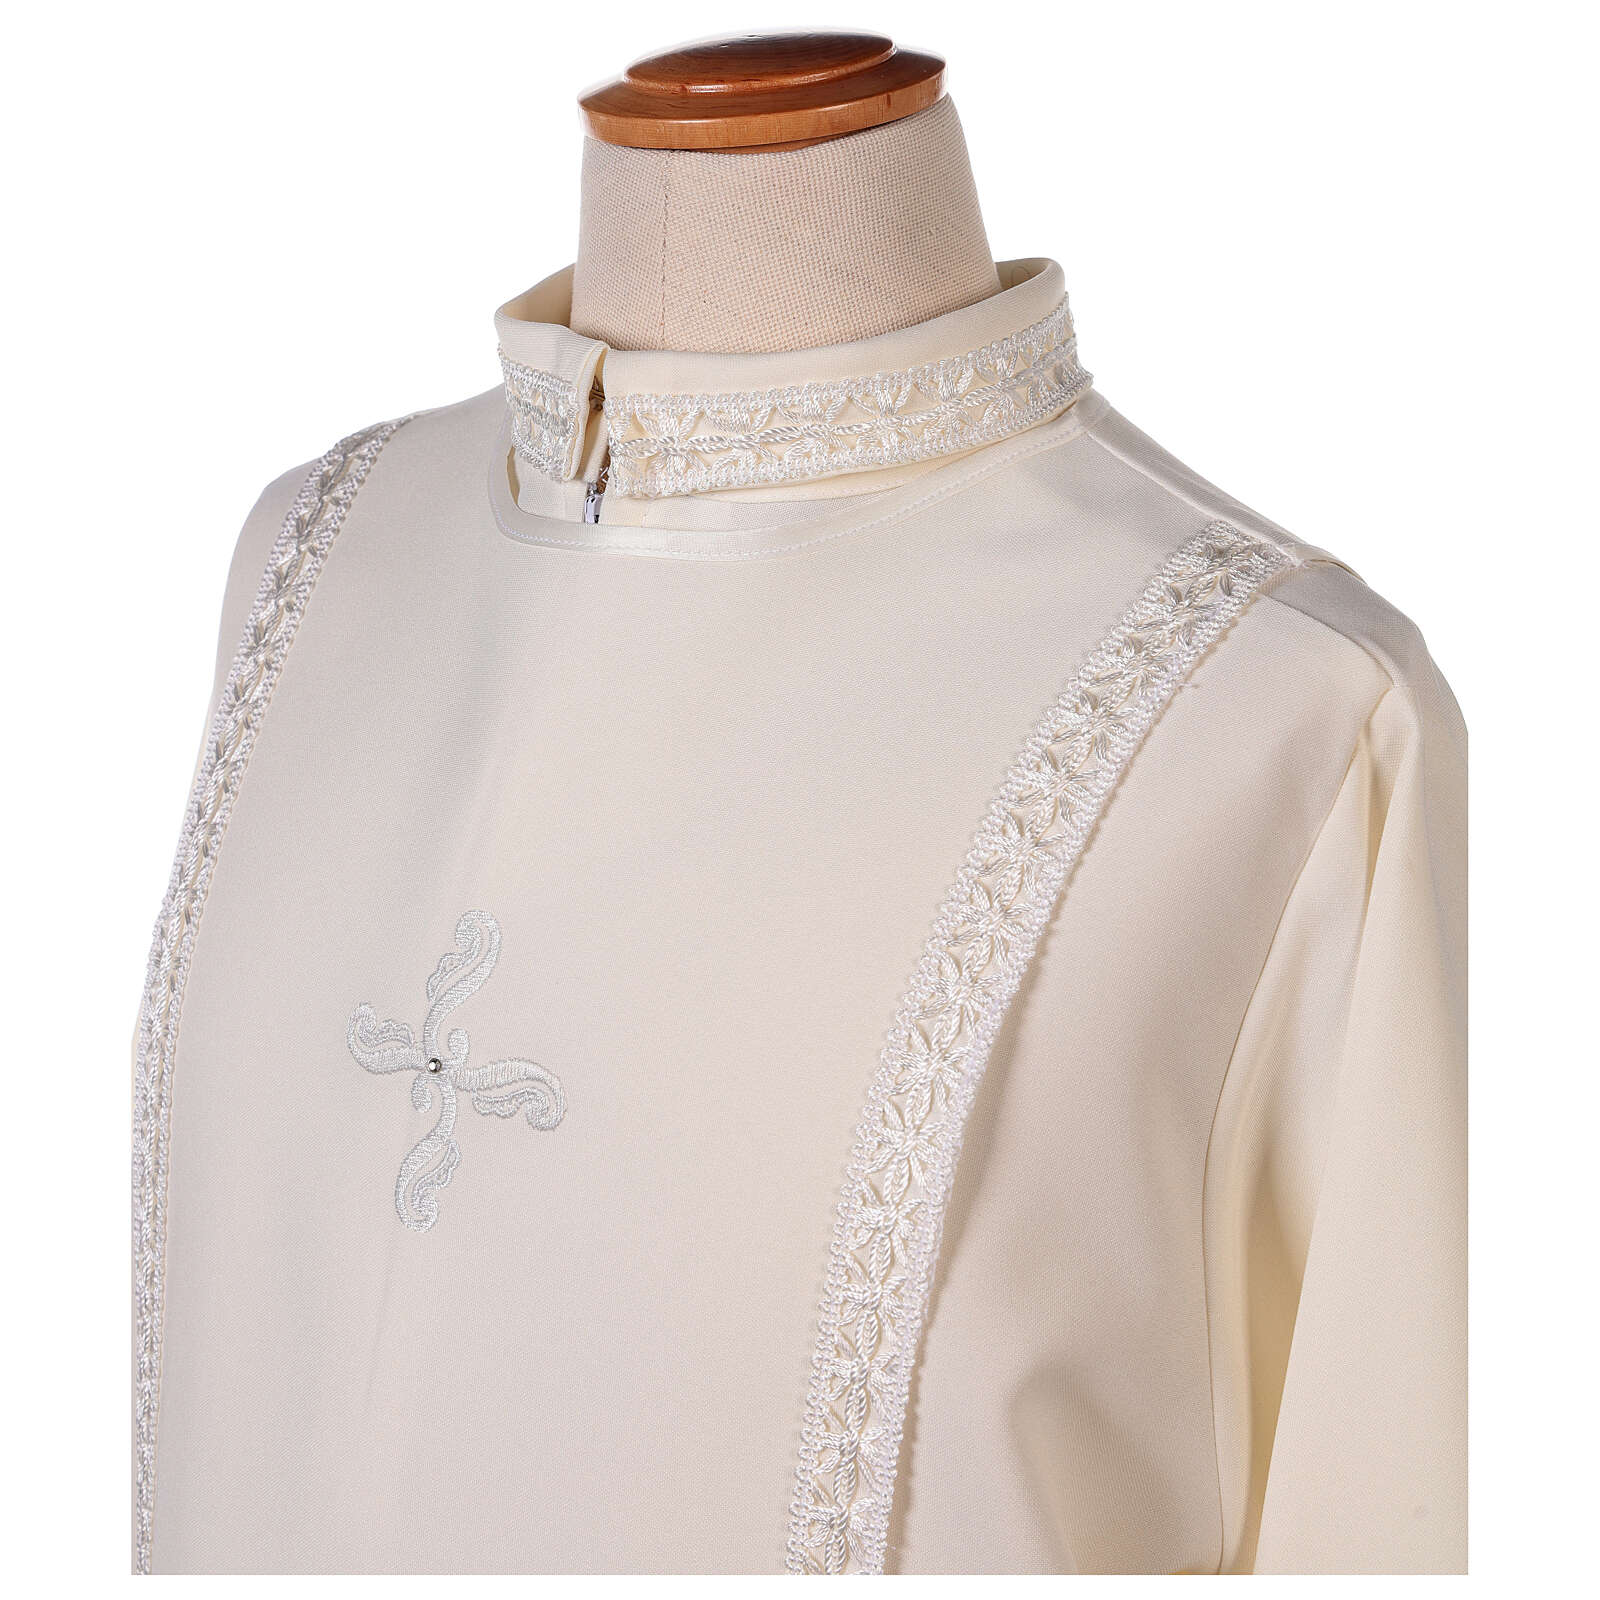 First Communion alb ivory with white embroidery girl 4